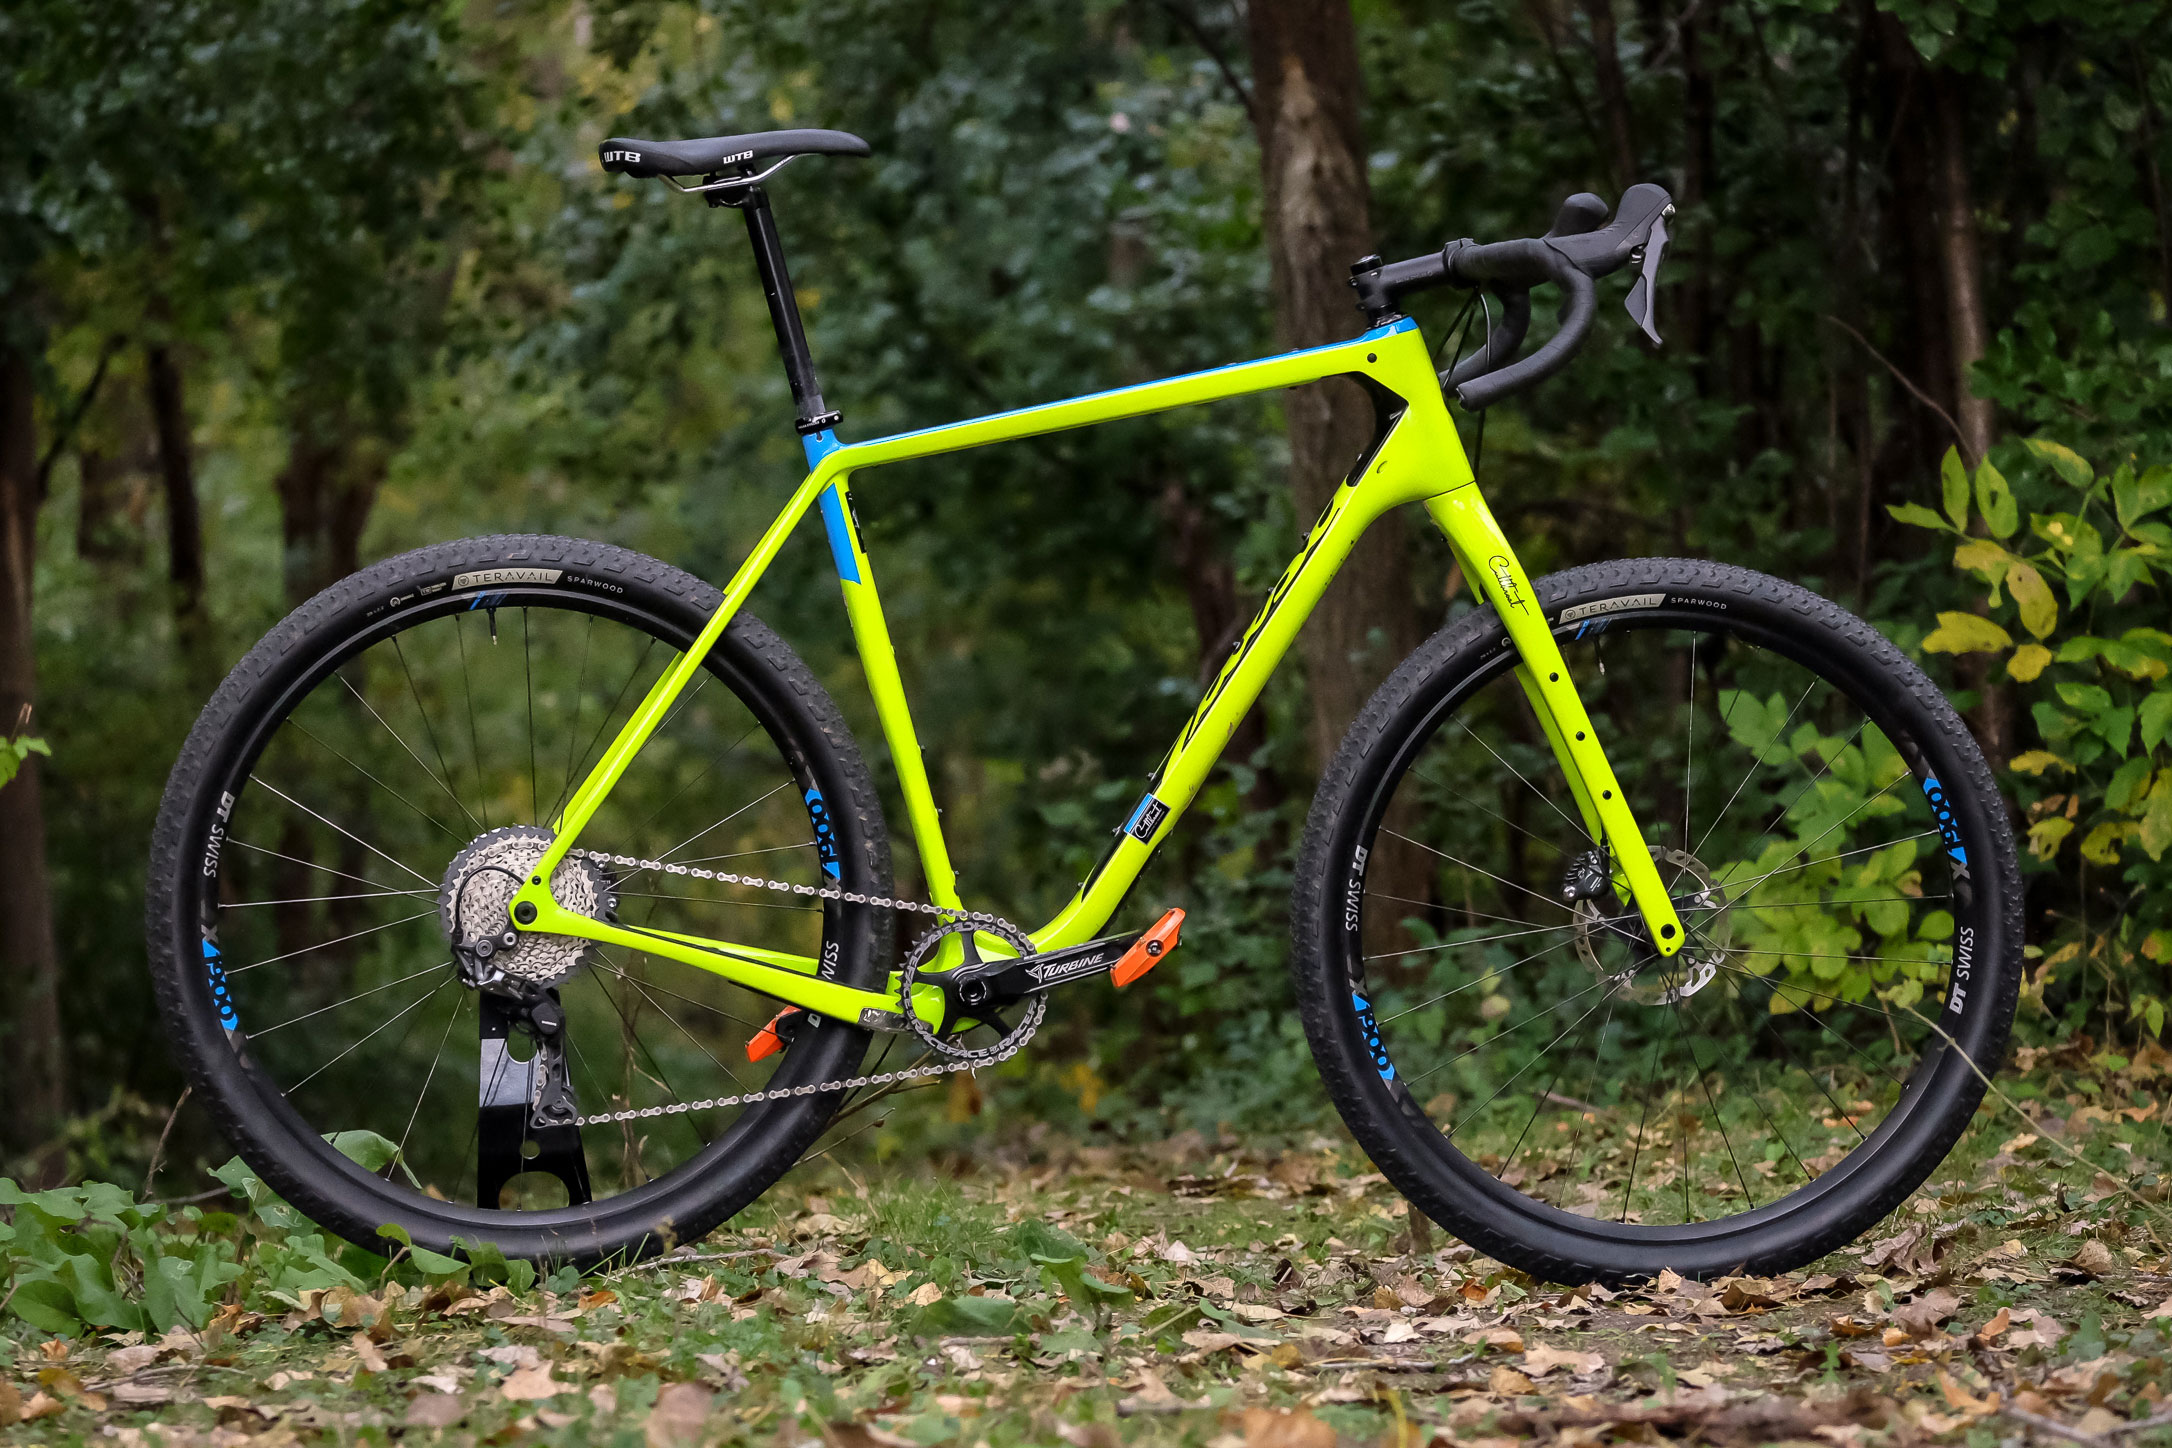 Salsa Redesigns Cutthroat: First Ride Review | GearJunkie